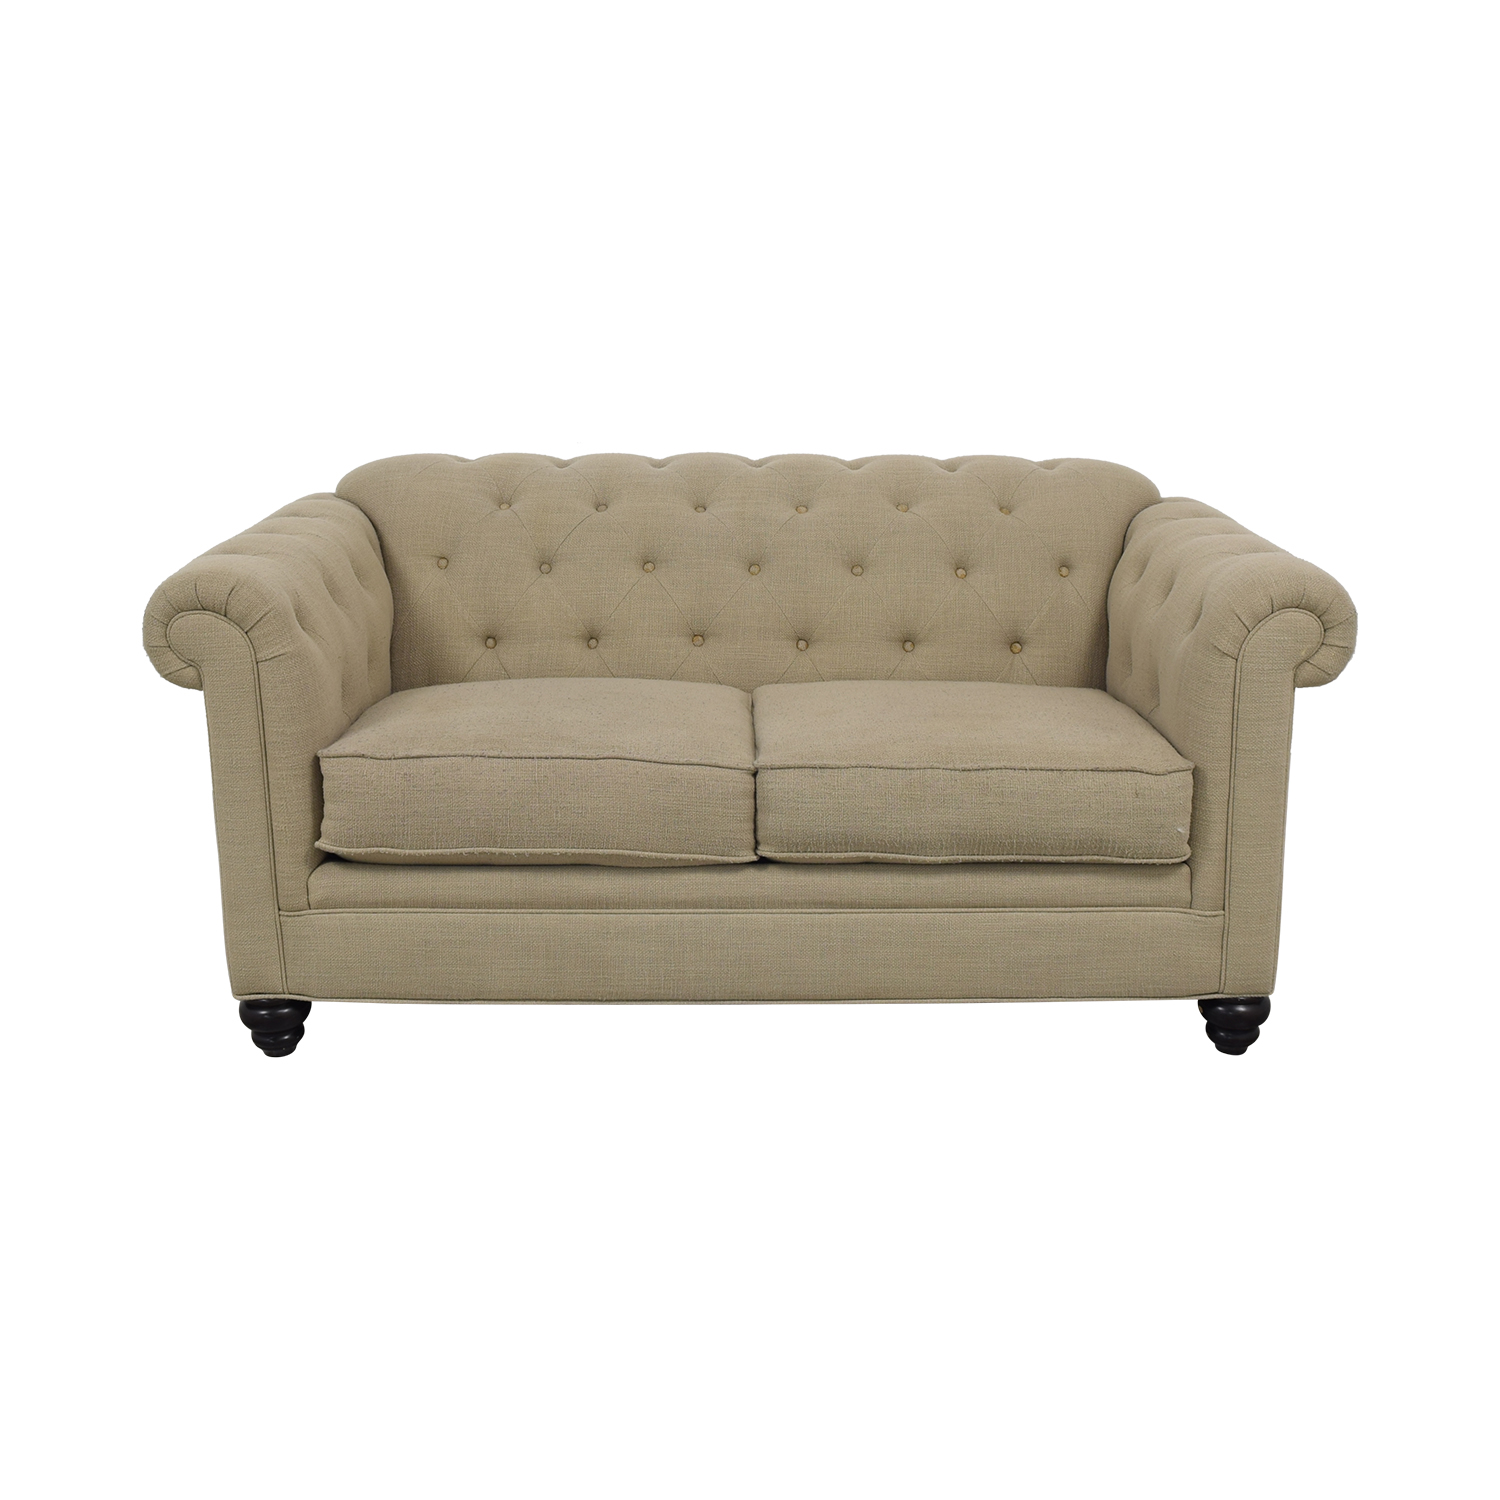 Jonathan Louis Jonathan Louis Cambridge Loveseat pa